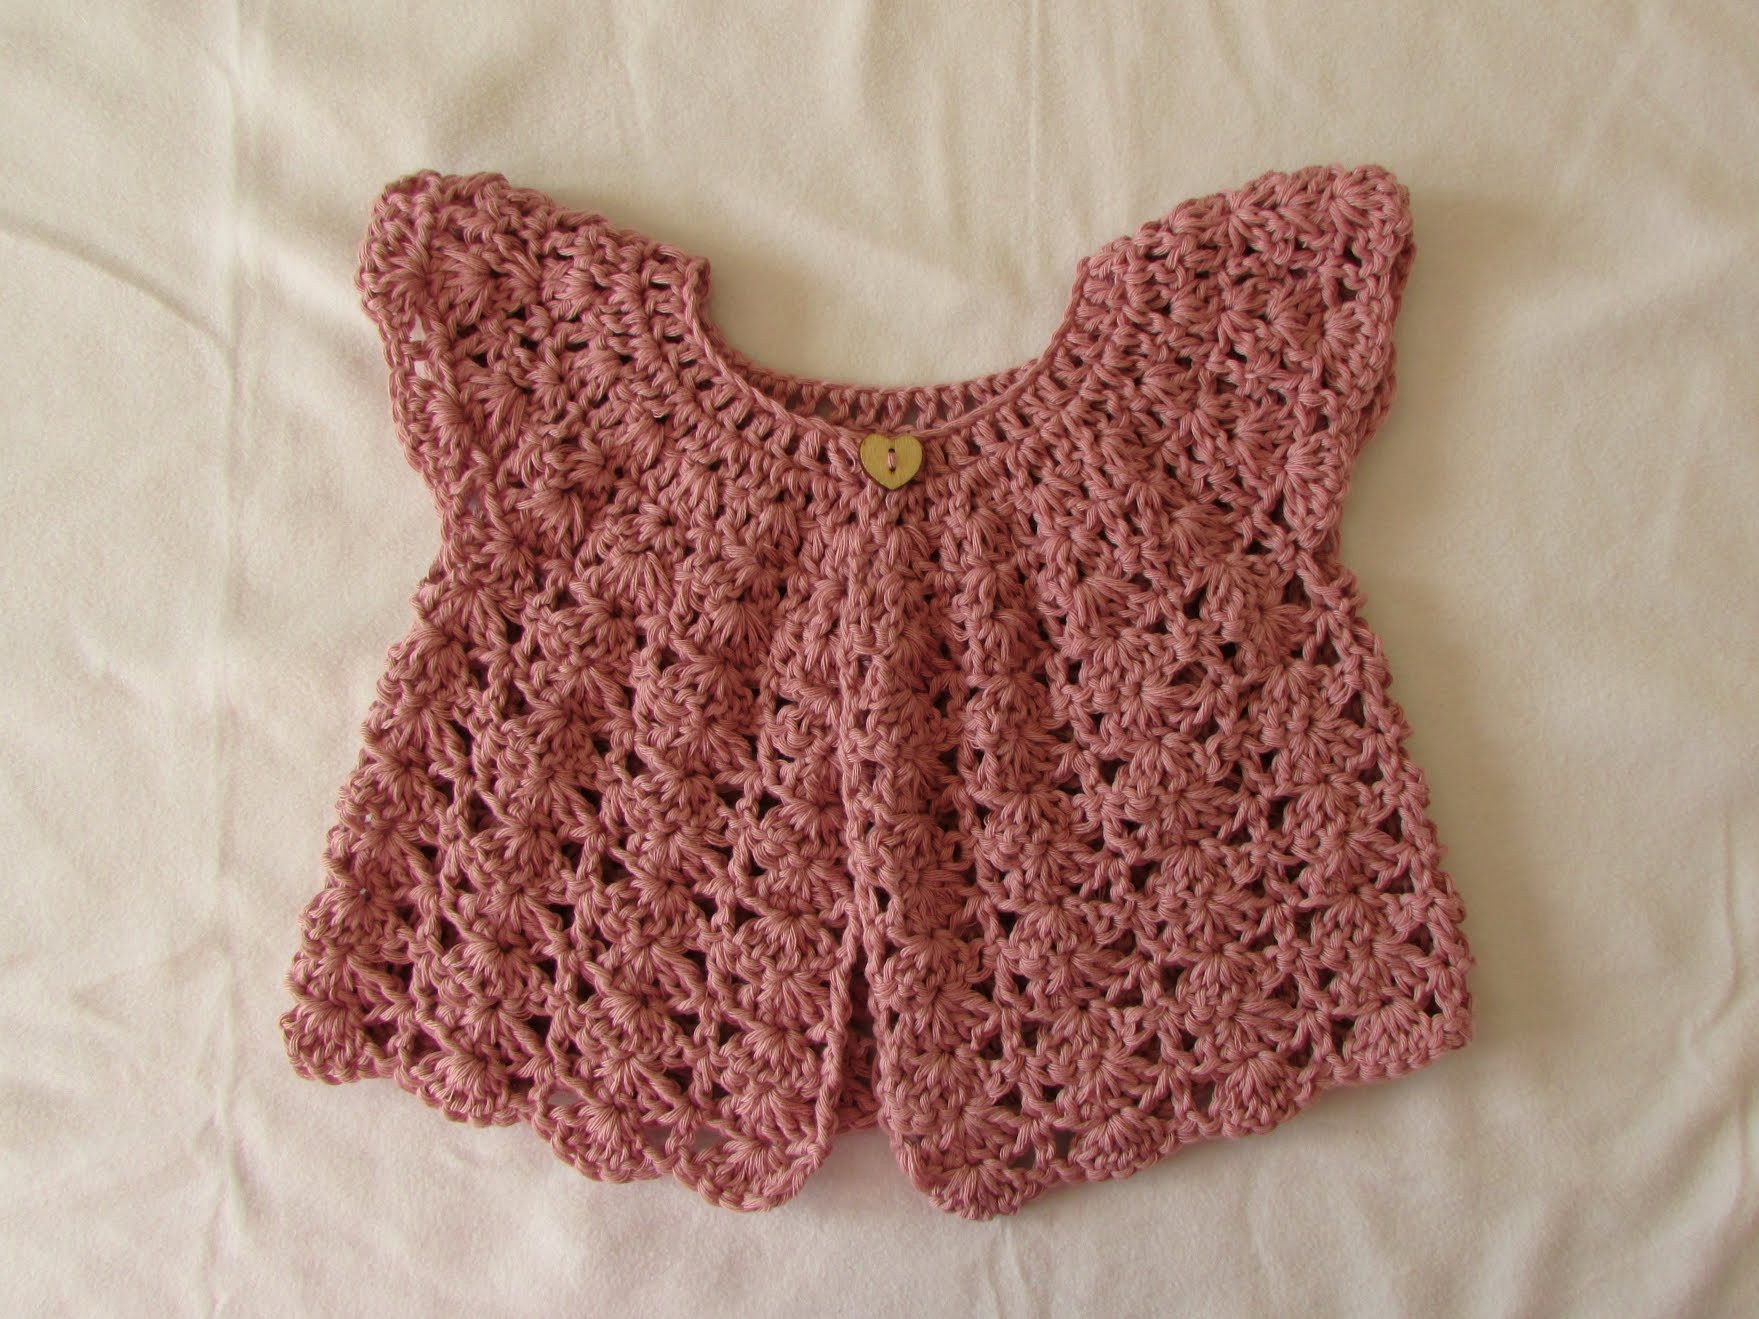 Elegant Baby Crochet Sweater Crochet Baby Sweater for Beginners Of Wonderful 41 Pictures Crochet Baby Sweater for Beginners